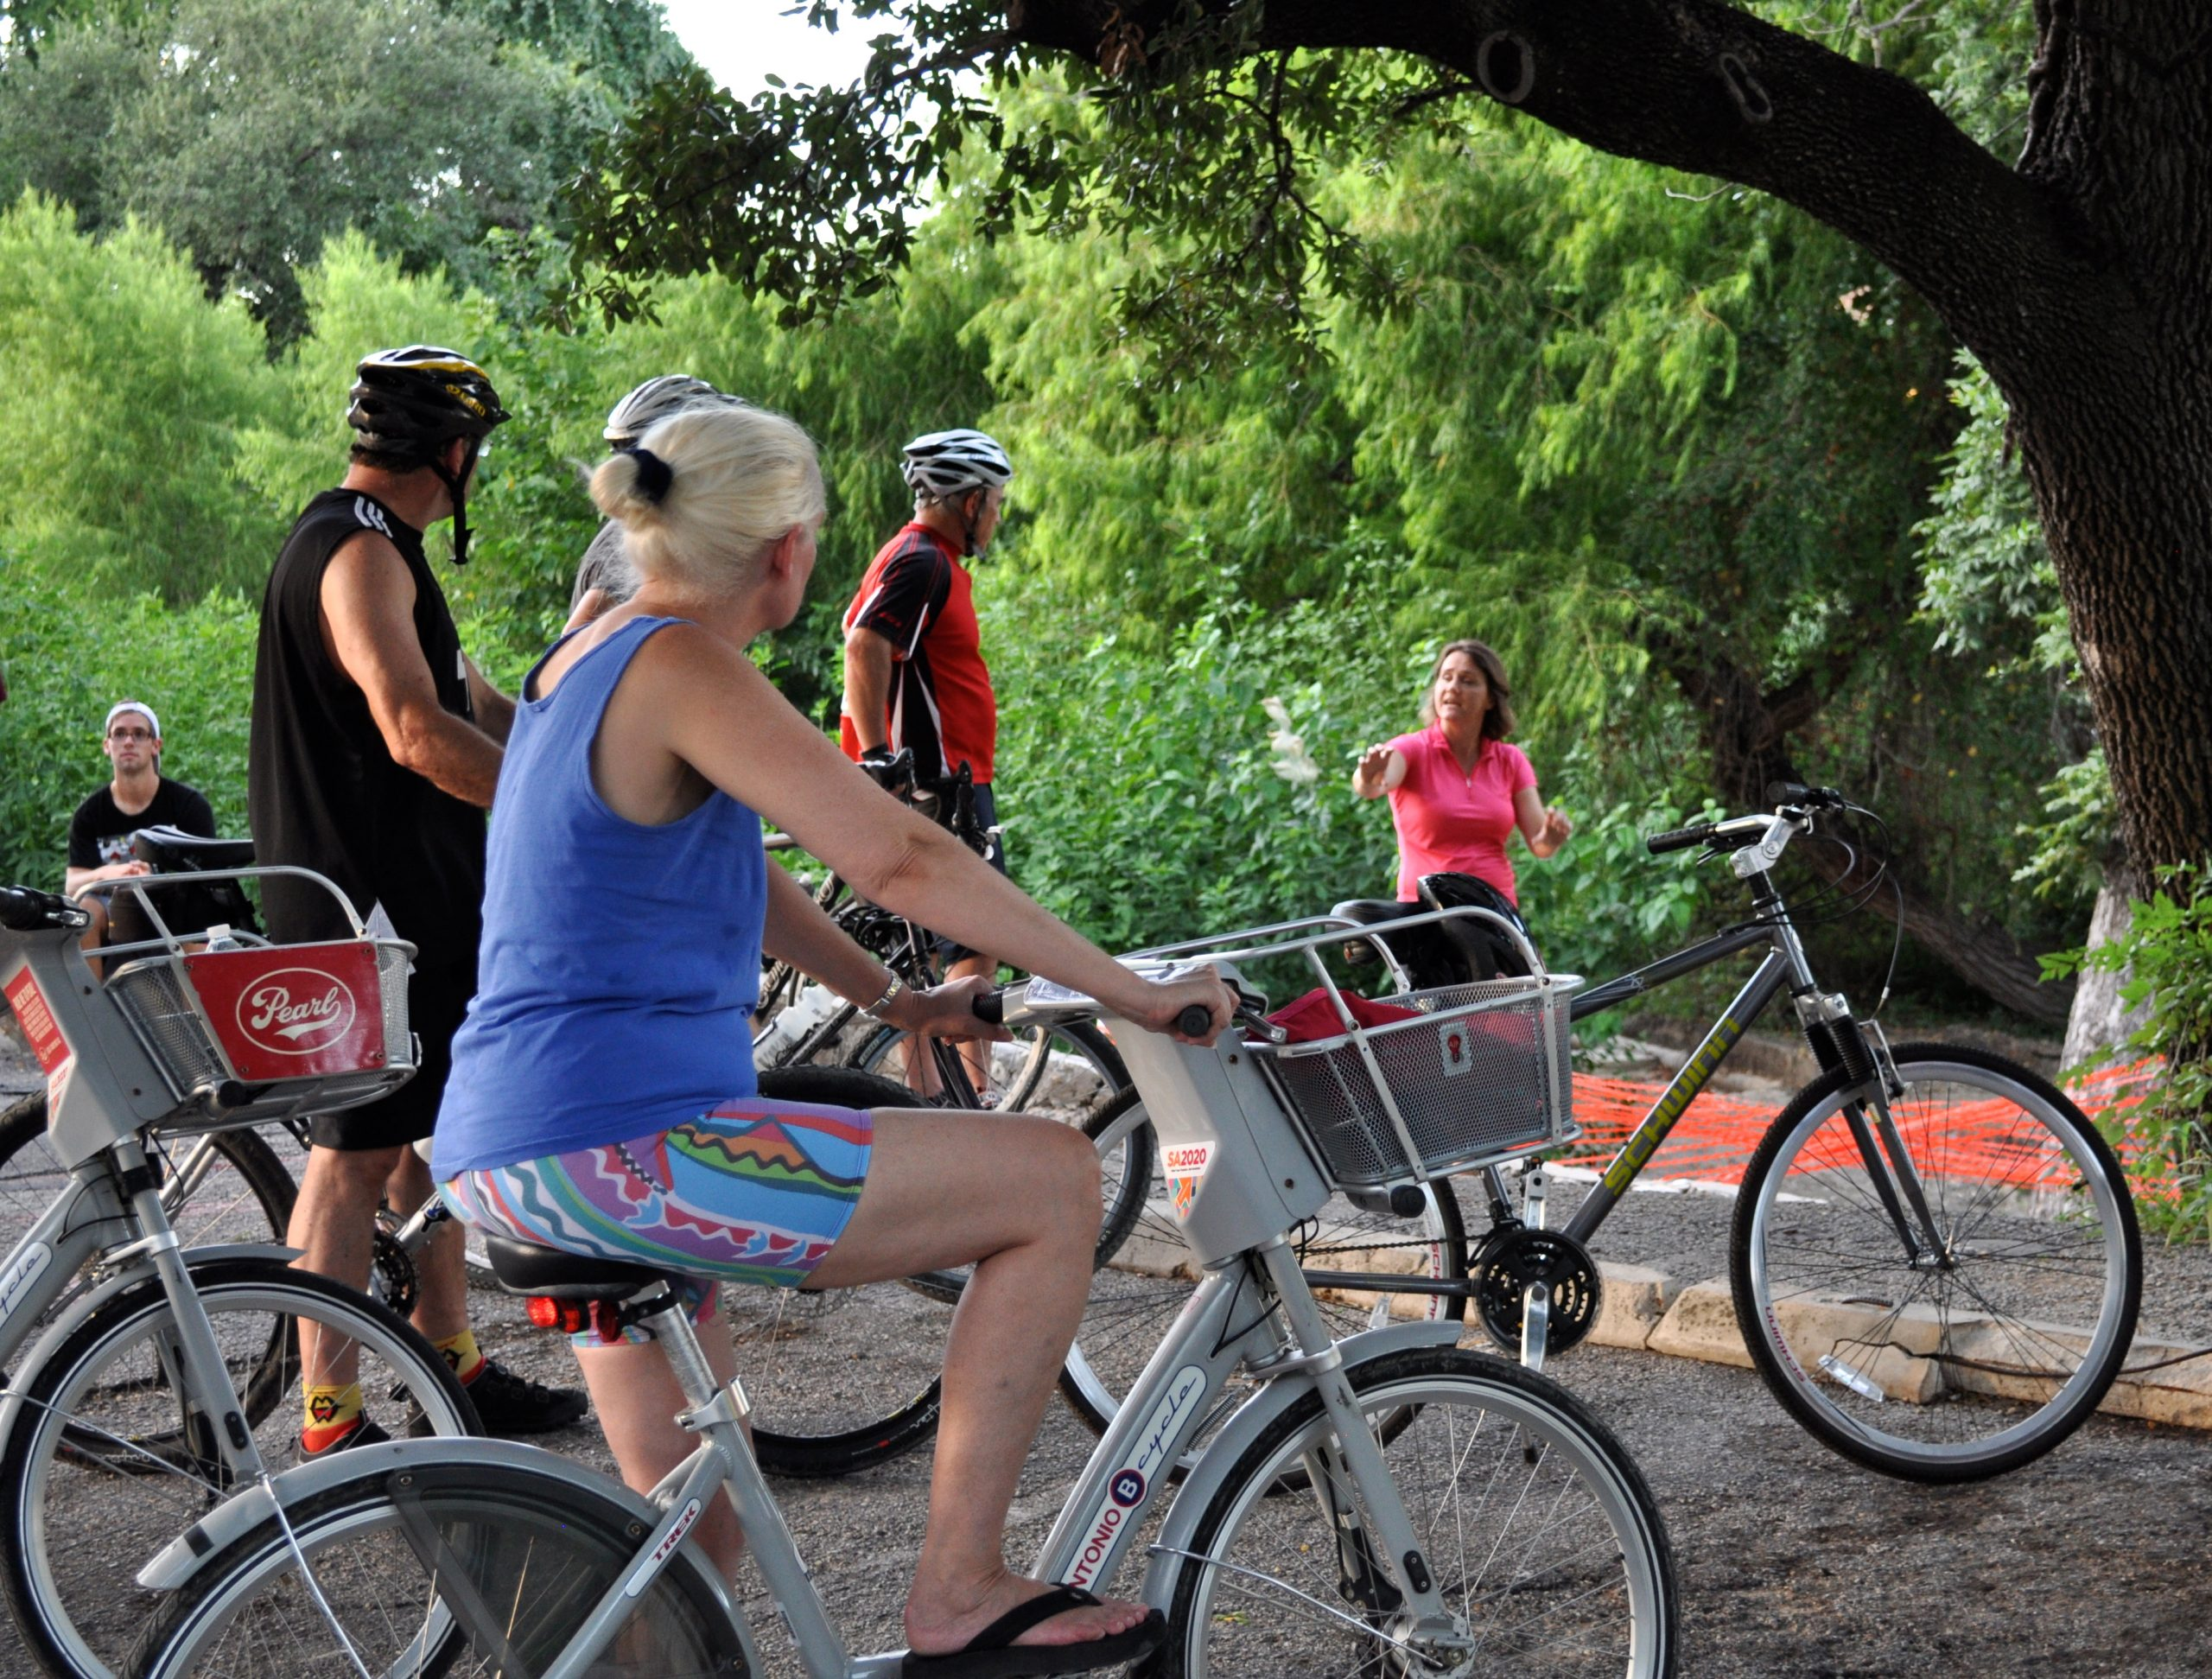 Something Mondayers on B-cycles and personal wheels listen to Powell describe San Antonio's historic acequias. Photo by Iris Dimmick.